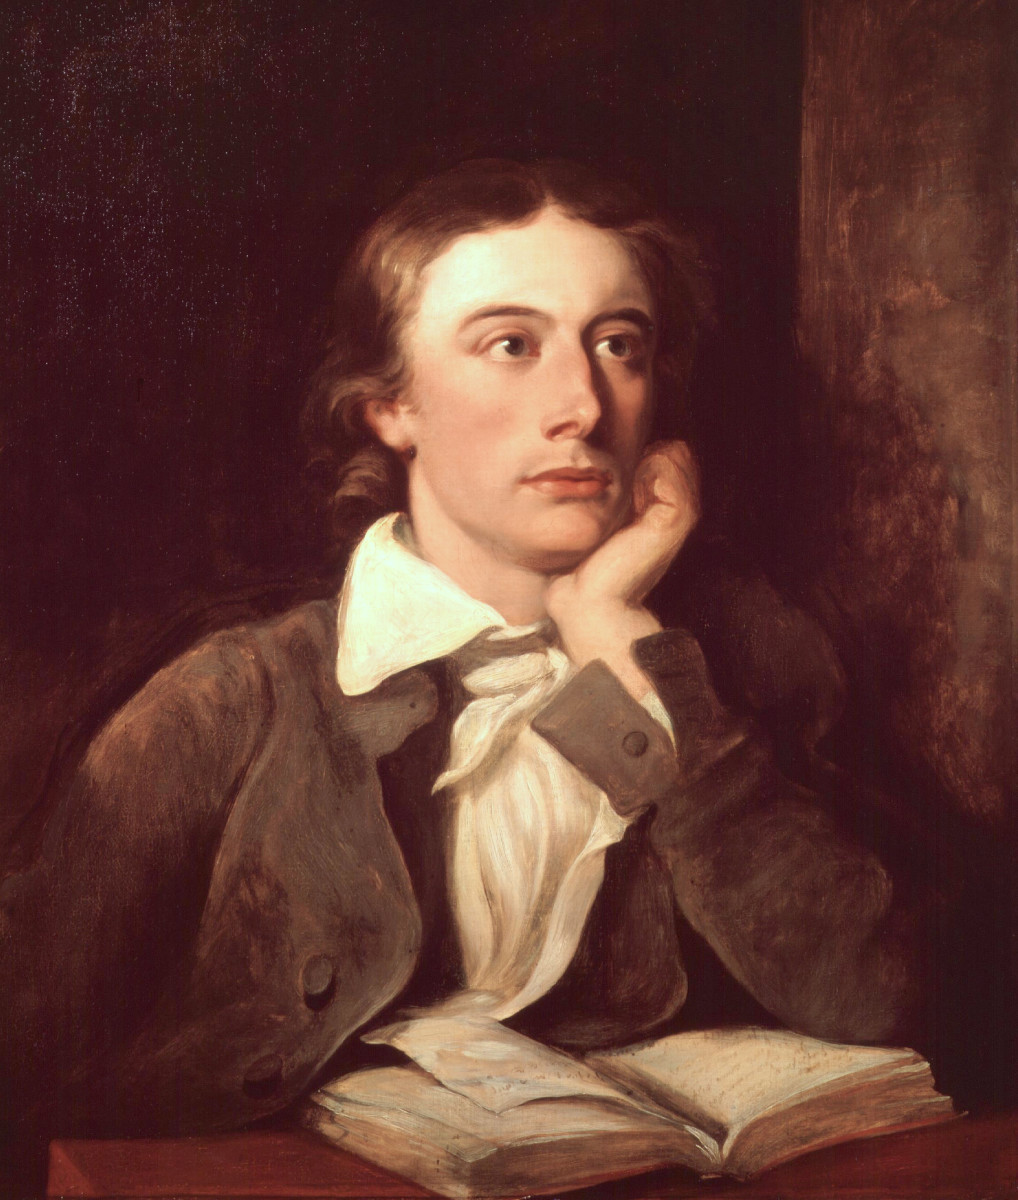 John Keats by William Hilton National Portrait Gallery